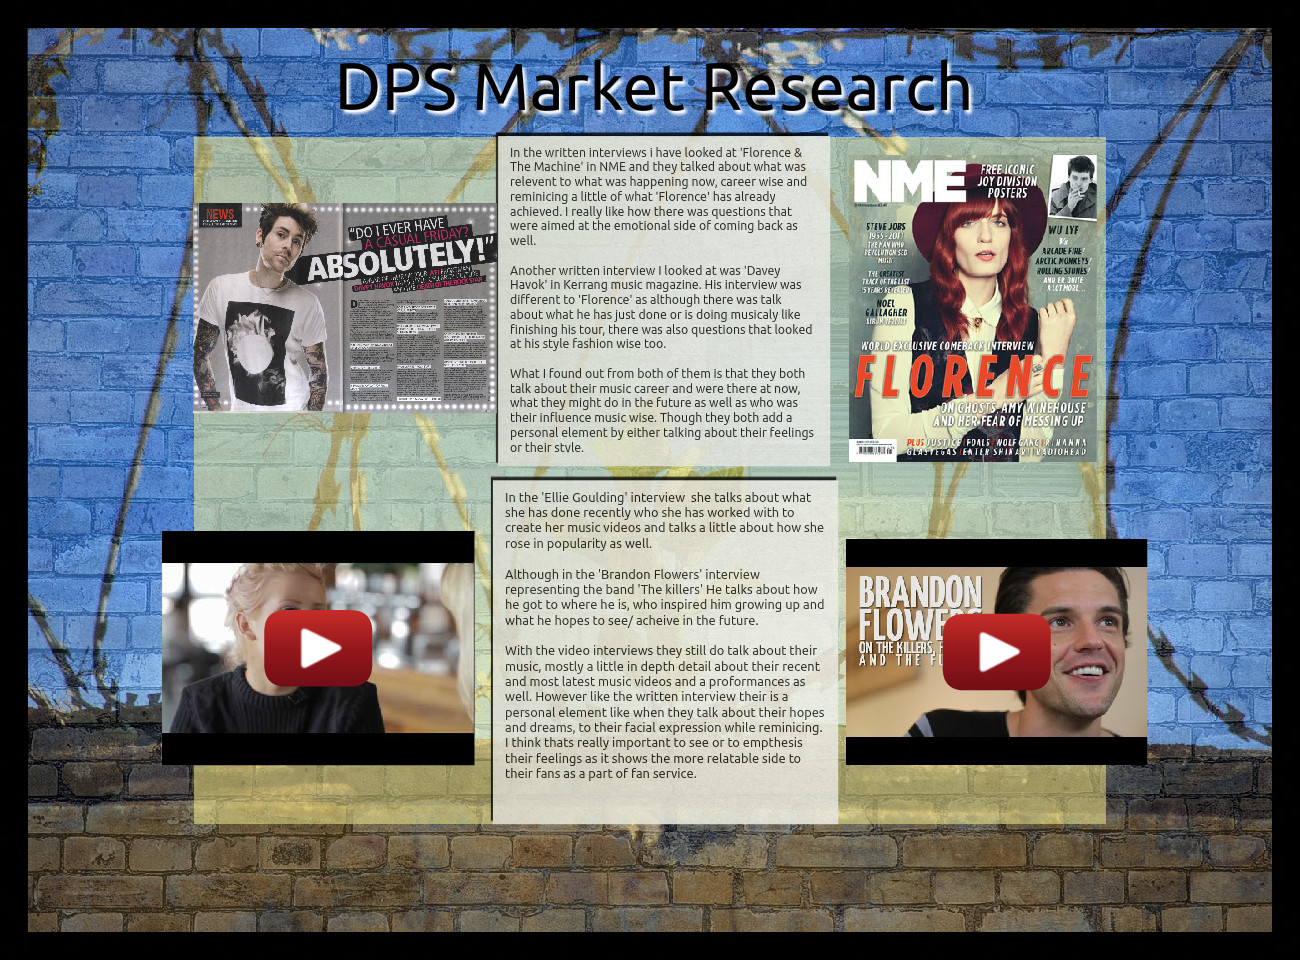 DPS market research